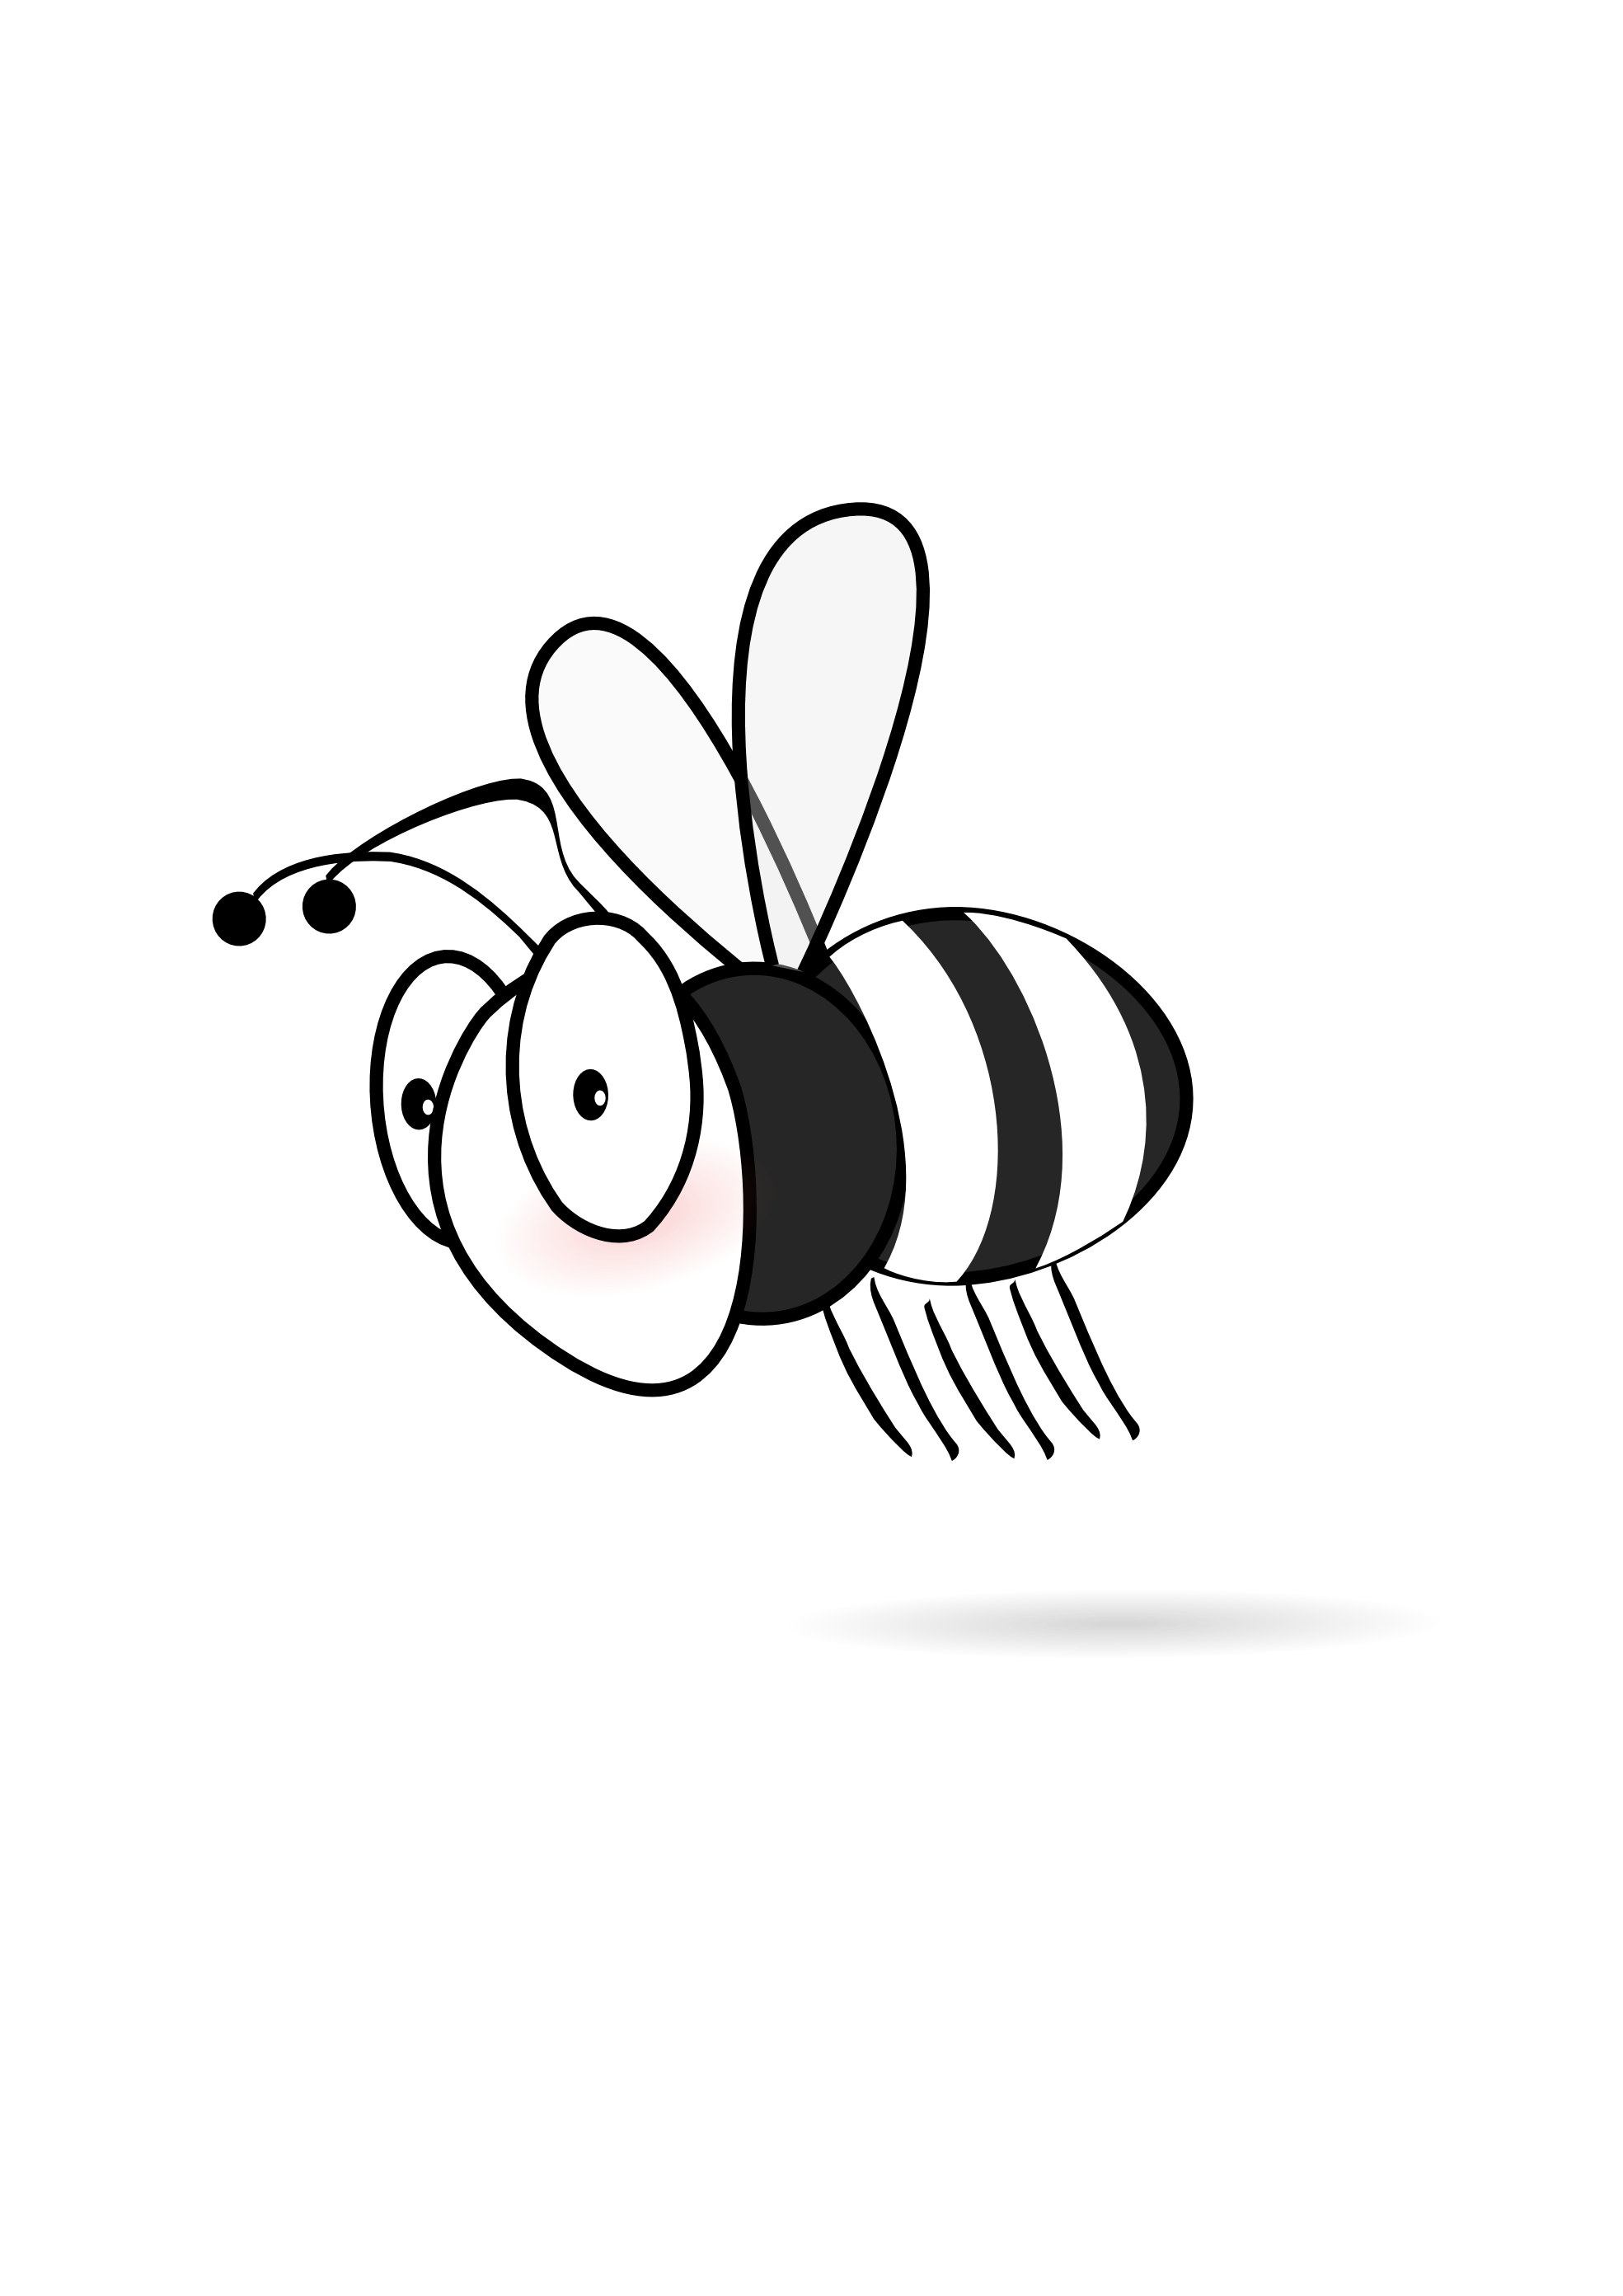 Bee 20 Black White Line Art Scalable Vector Graphics Svg